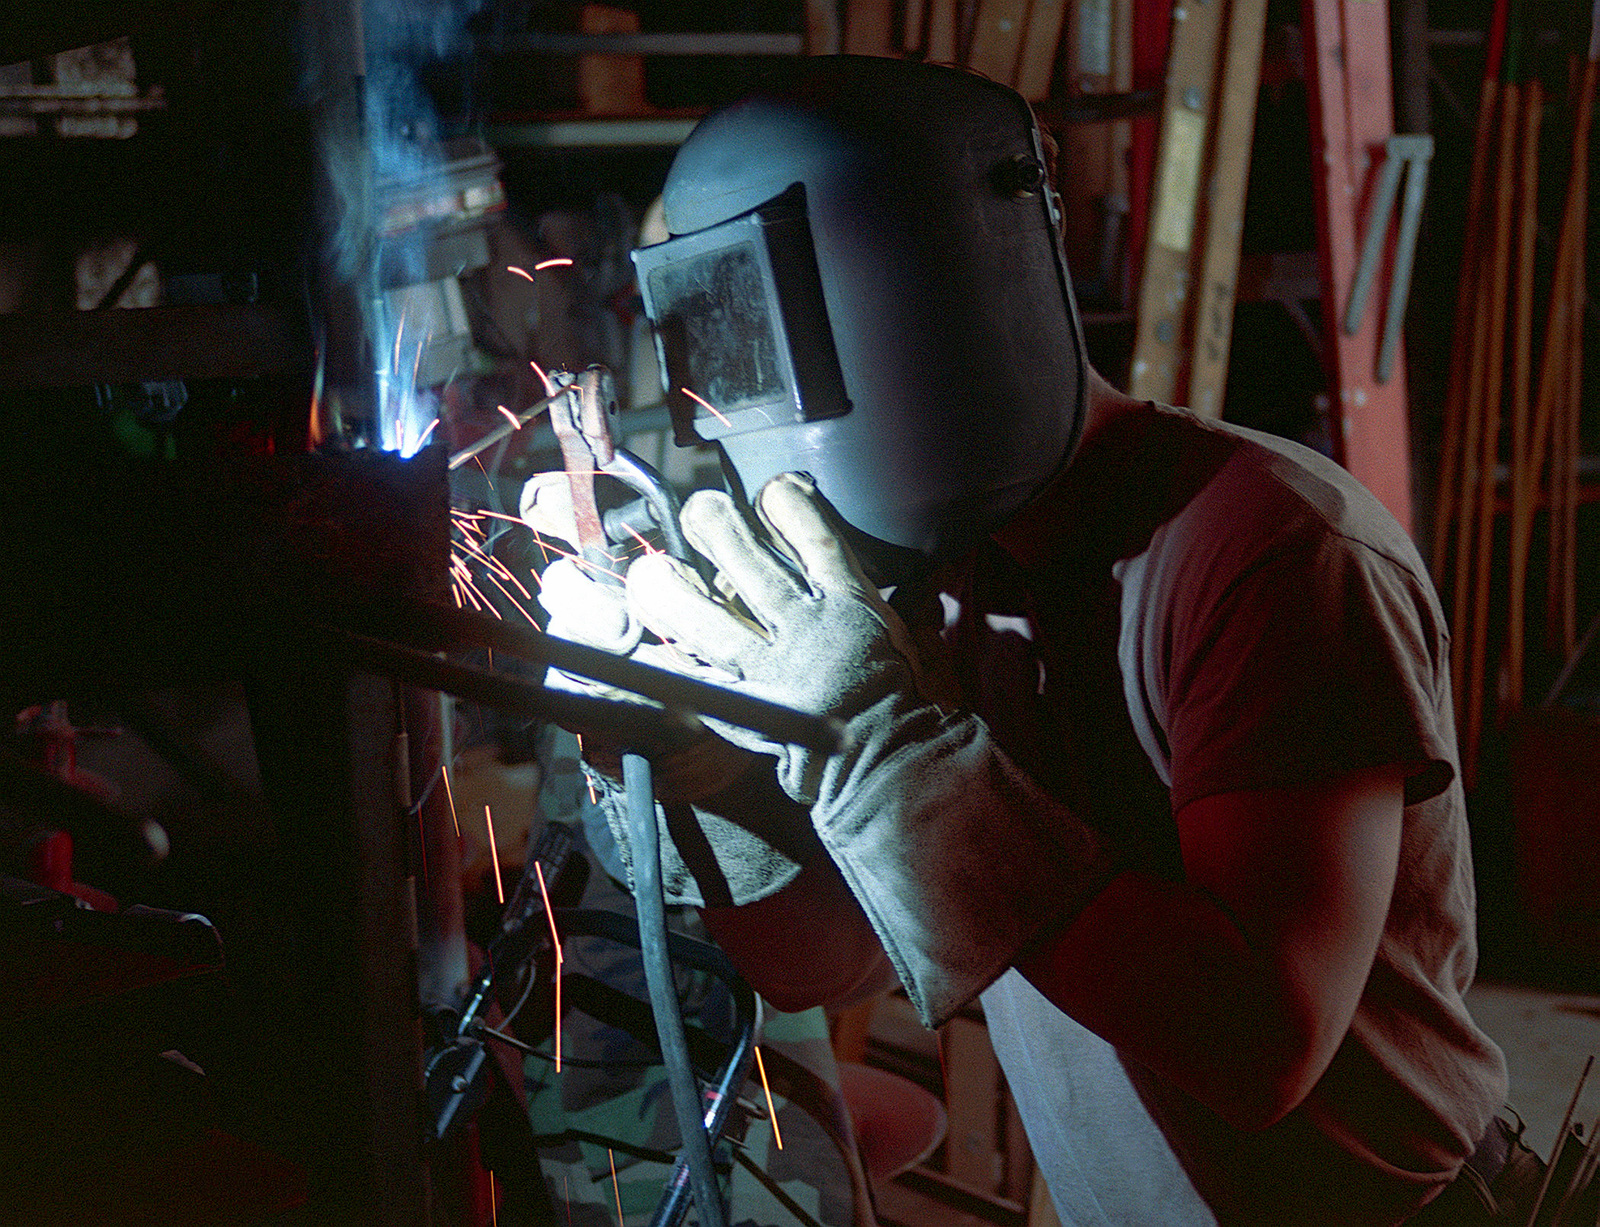 US Navy Steelworker 3rd Class (SW3) Roger Baker, Construction Battalion Unit Four One Zero (CBU-410), arc welds a tool rack at the seabee camp, Naval Air Station Jacksonville, Florida, 7 May 1998